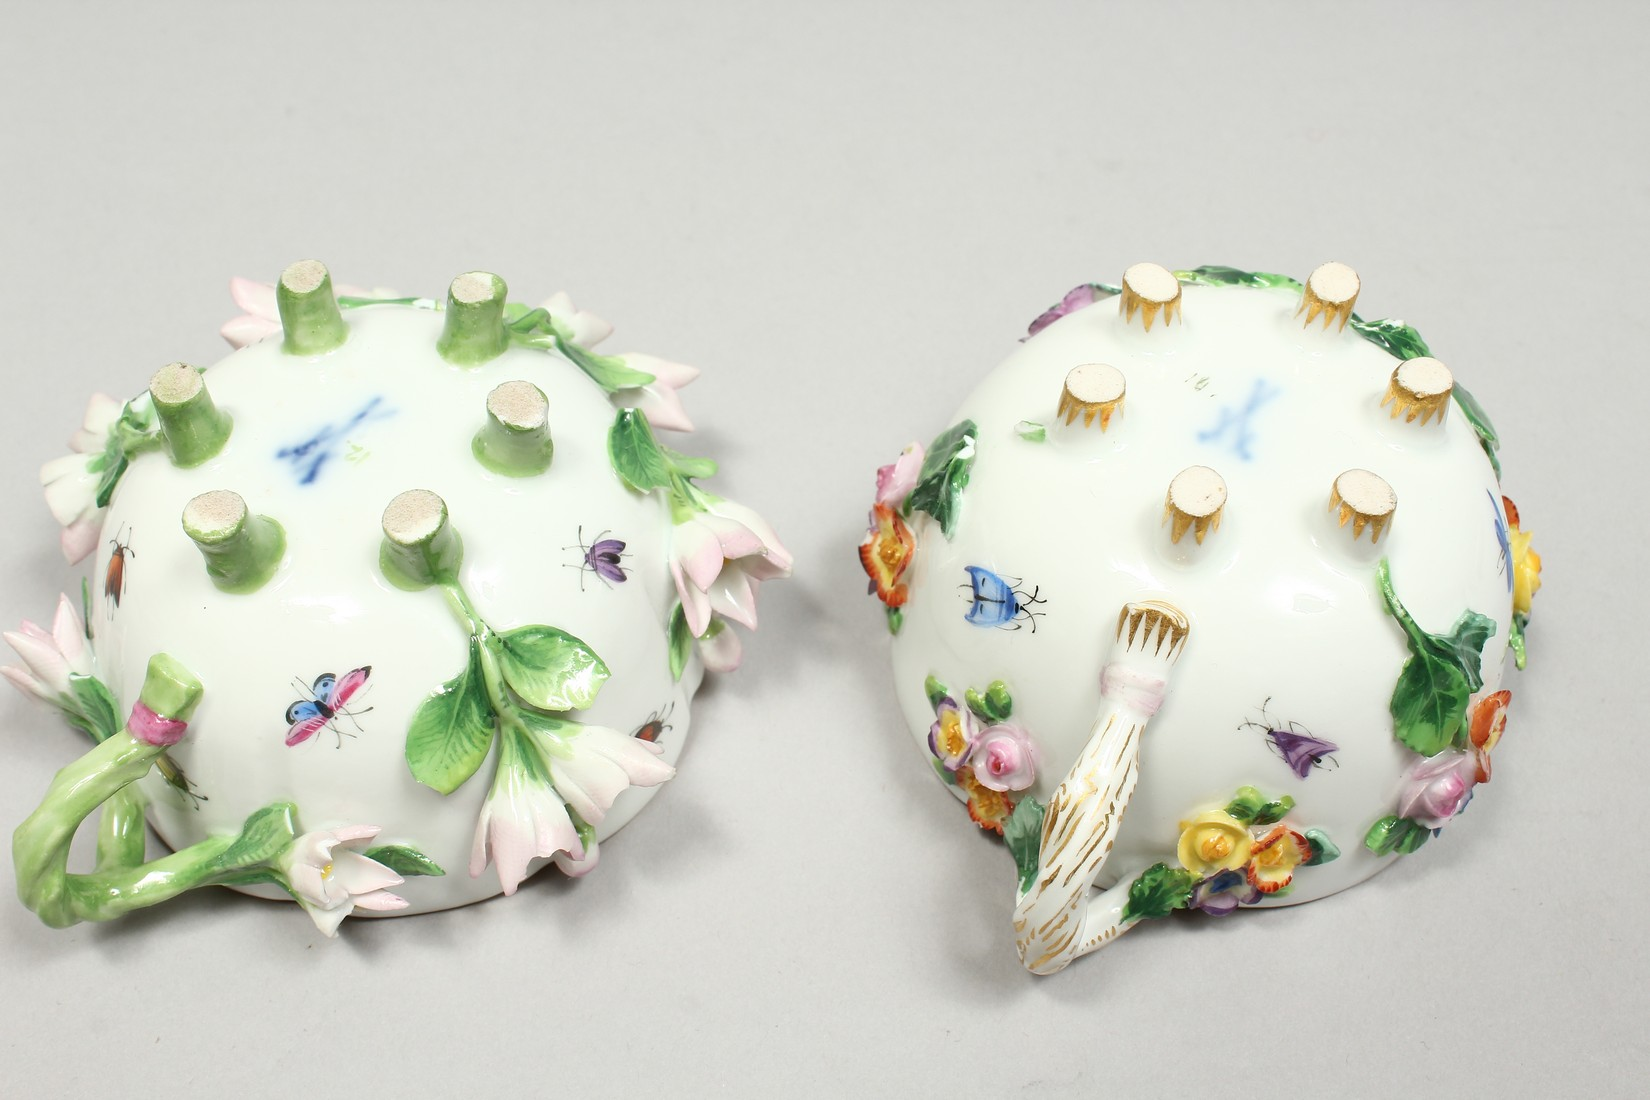 TWO MEISSEN PORCELAIN CUPS AND SAUCERS AND A SAUCER, encrusted with flowers and painted with - Image 7 of 16